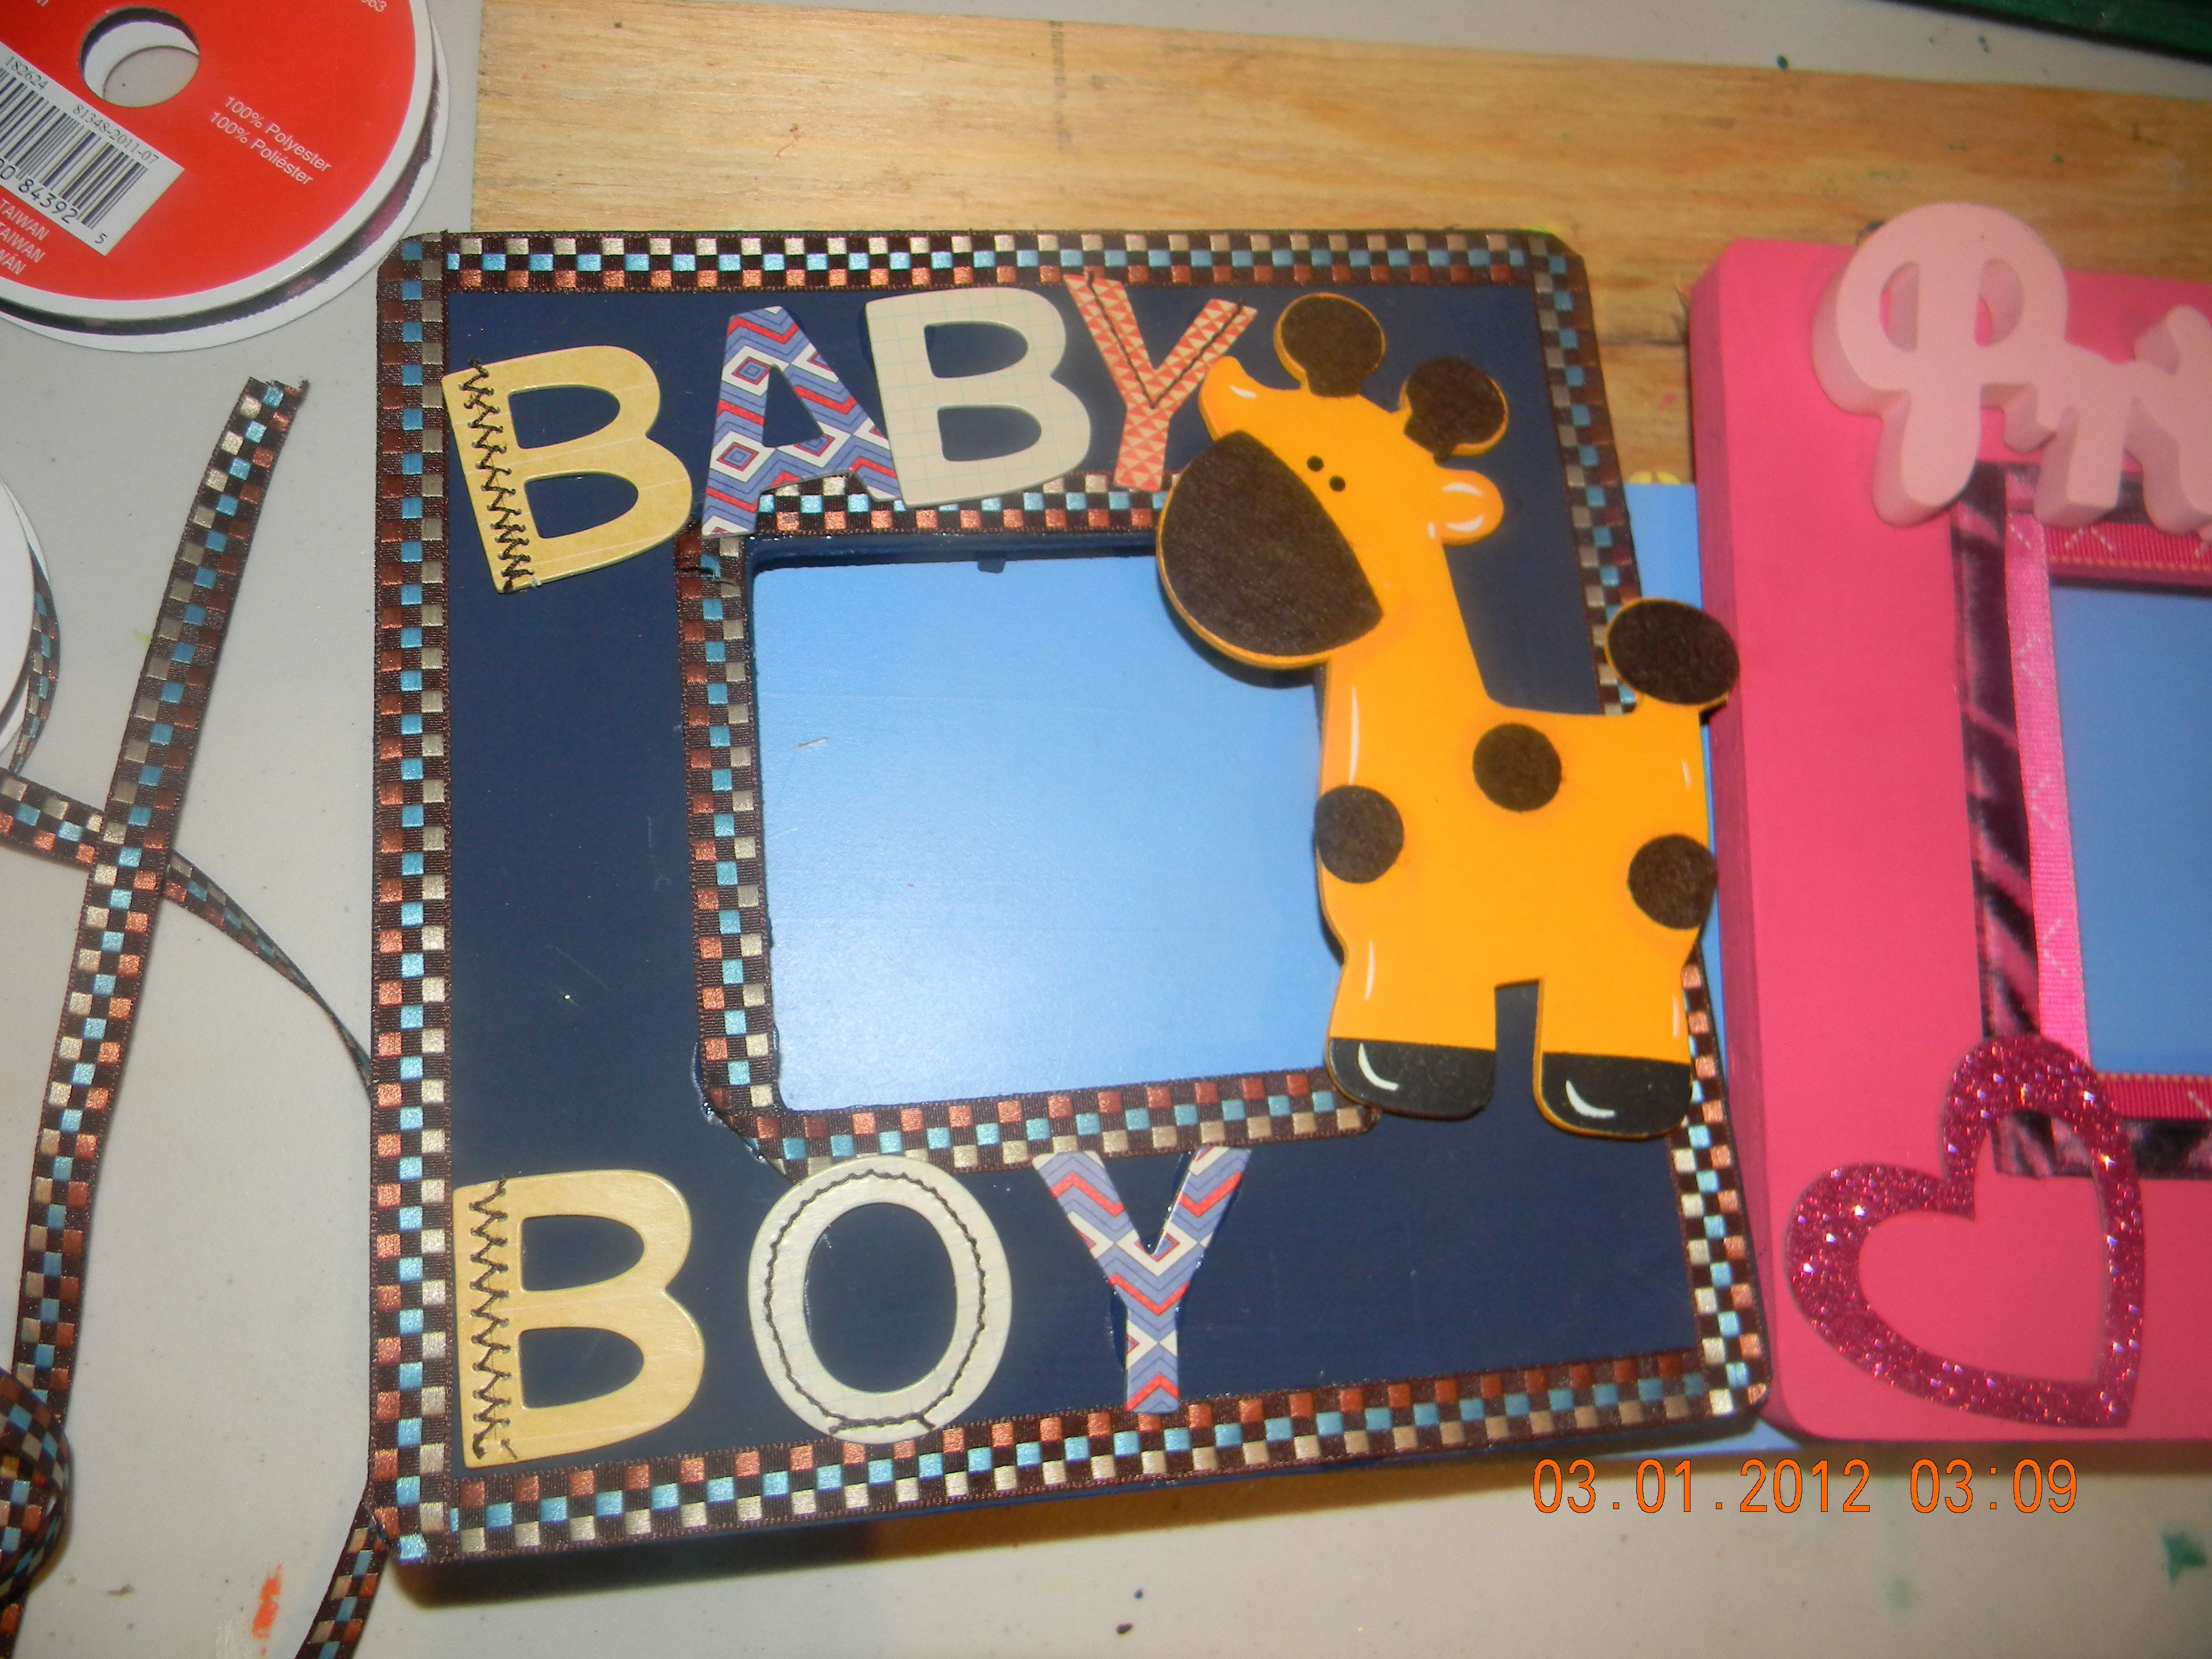 Baby boy picture fram made w/ paint, ribbon, wooden giraffe and wooden letters